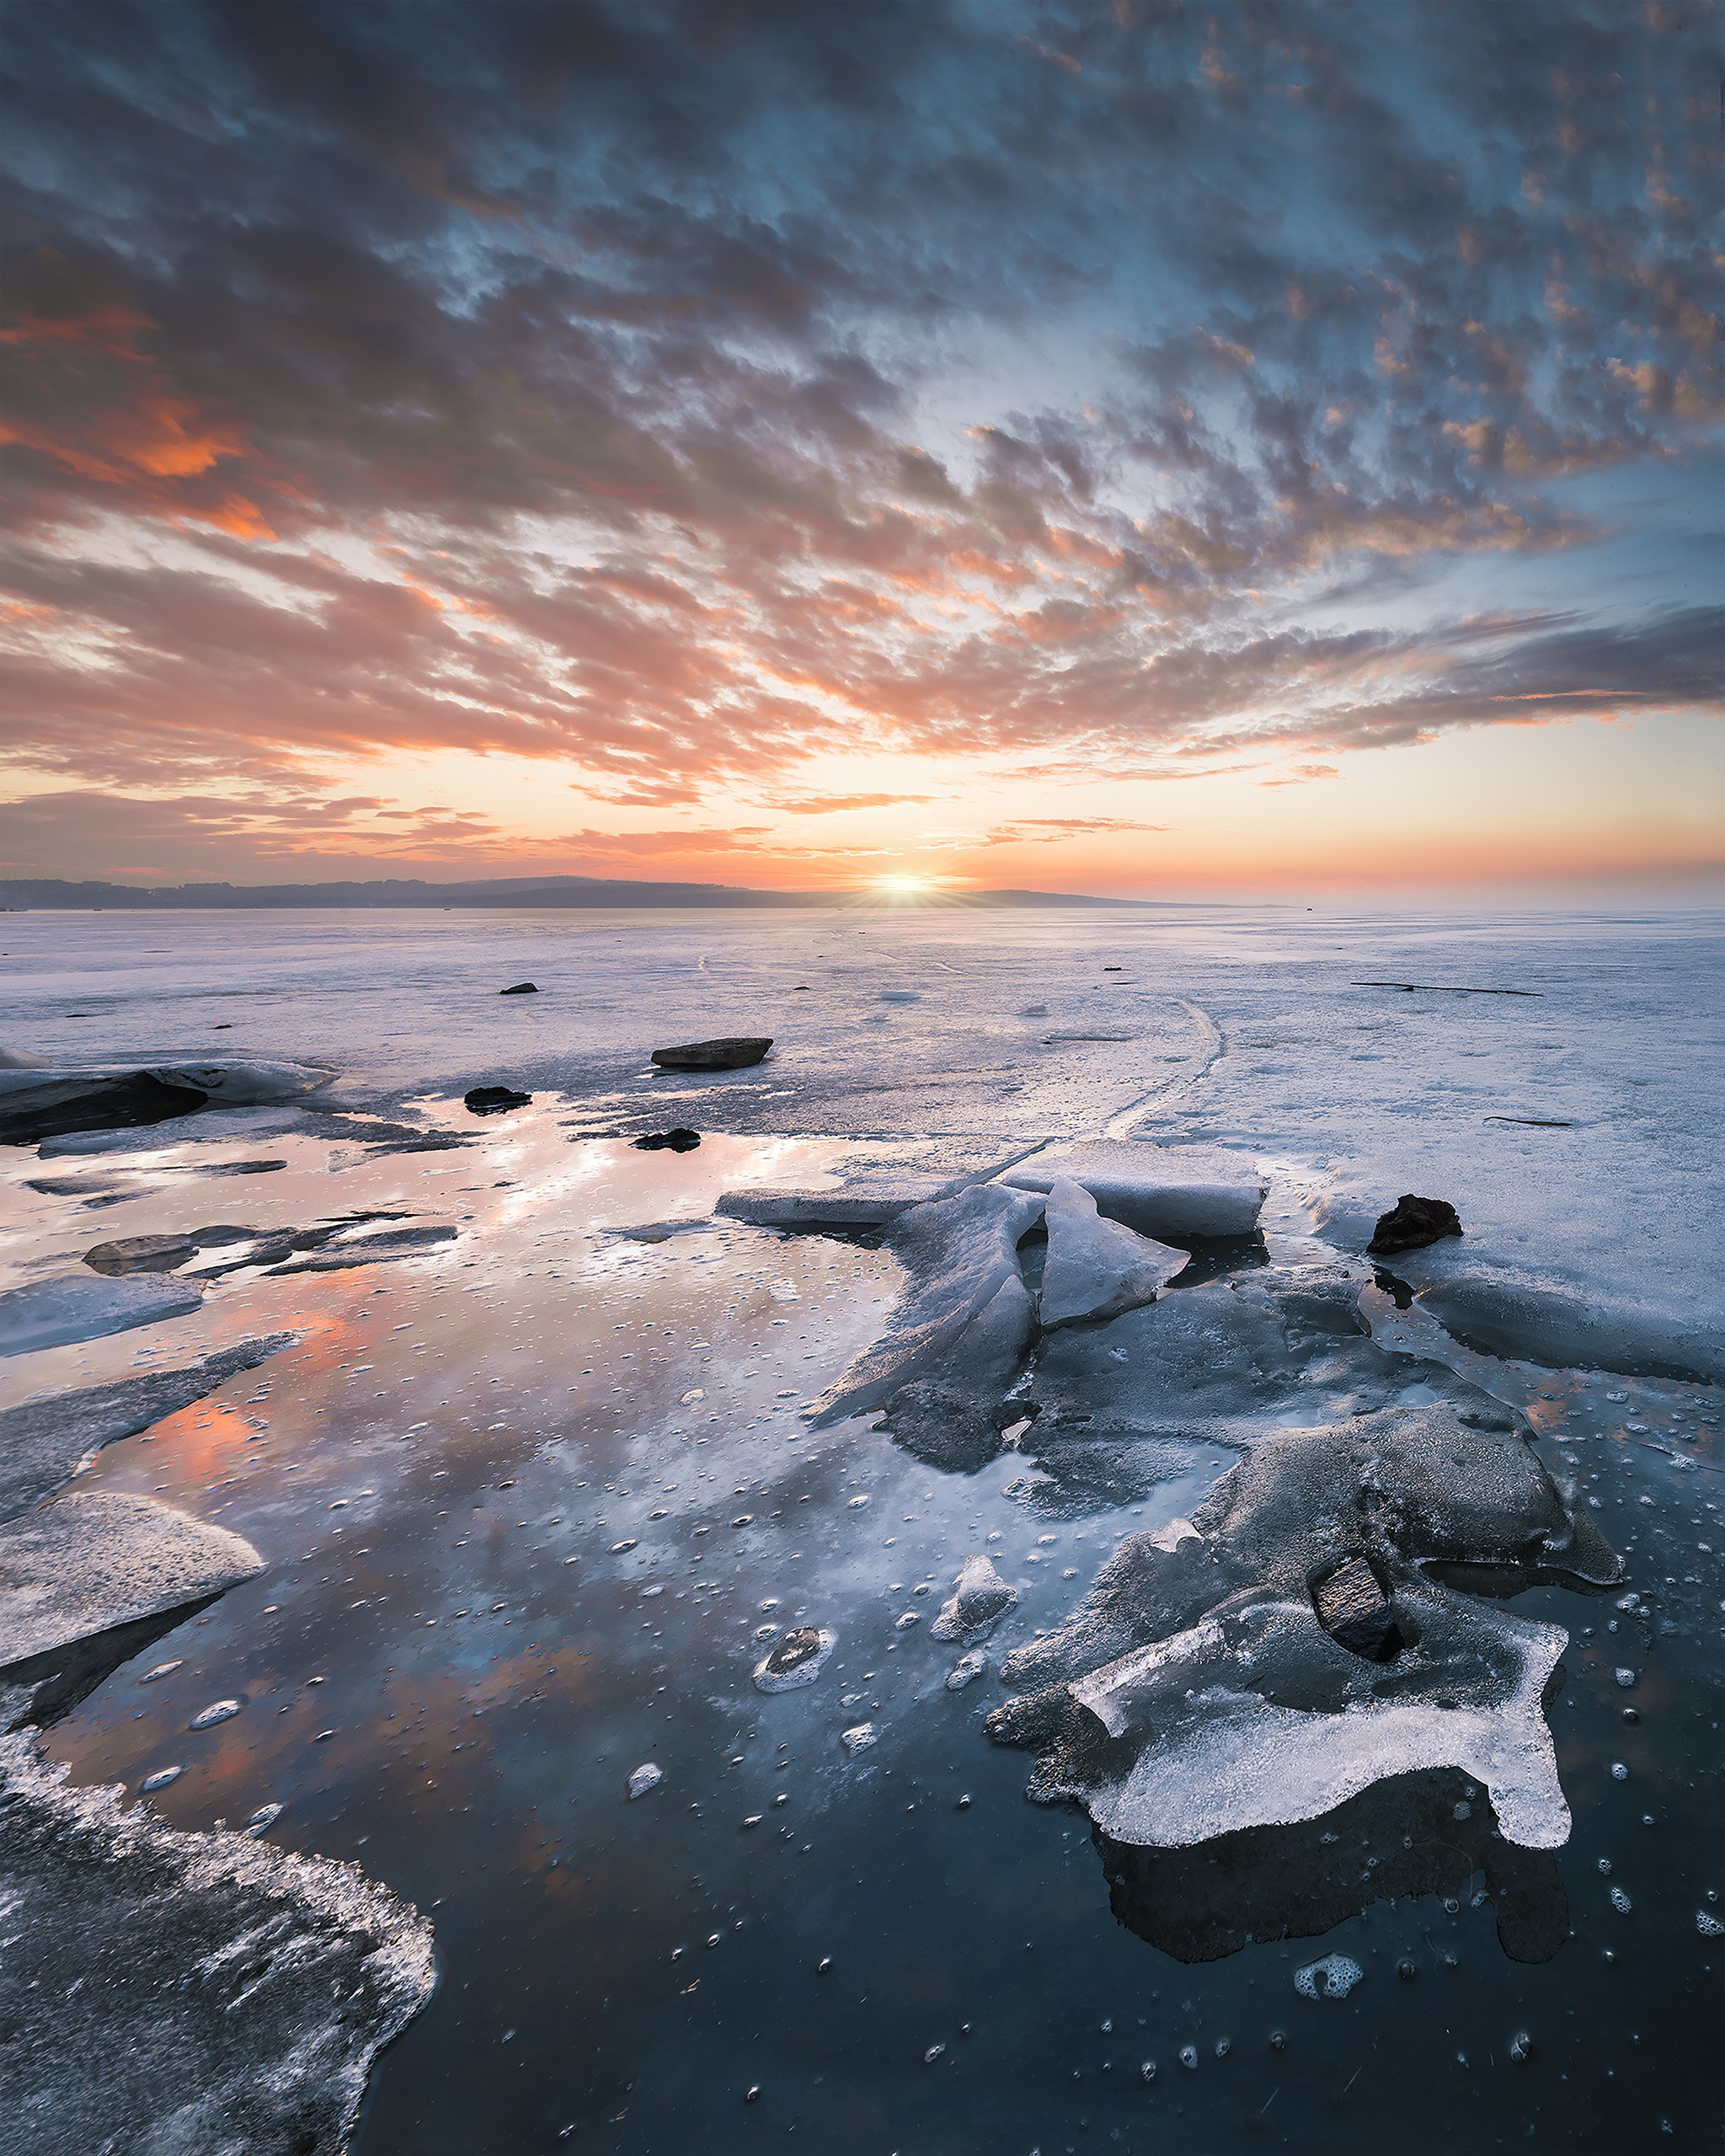 sunset, winter, ice, lake, water, sky, nature, landscape, Jeni Madjarova